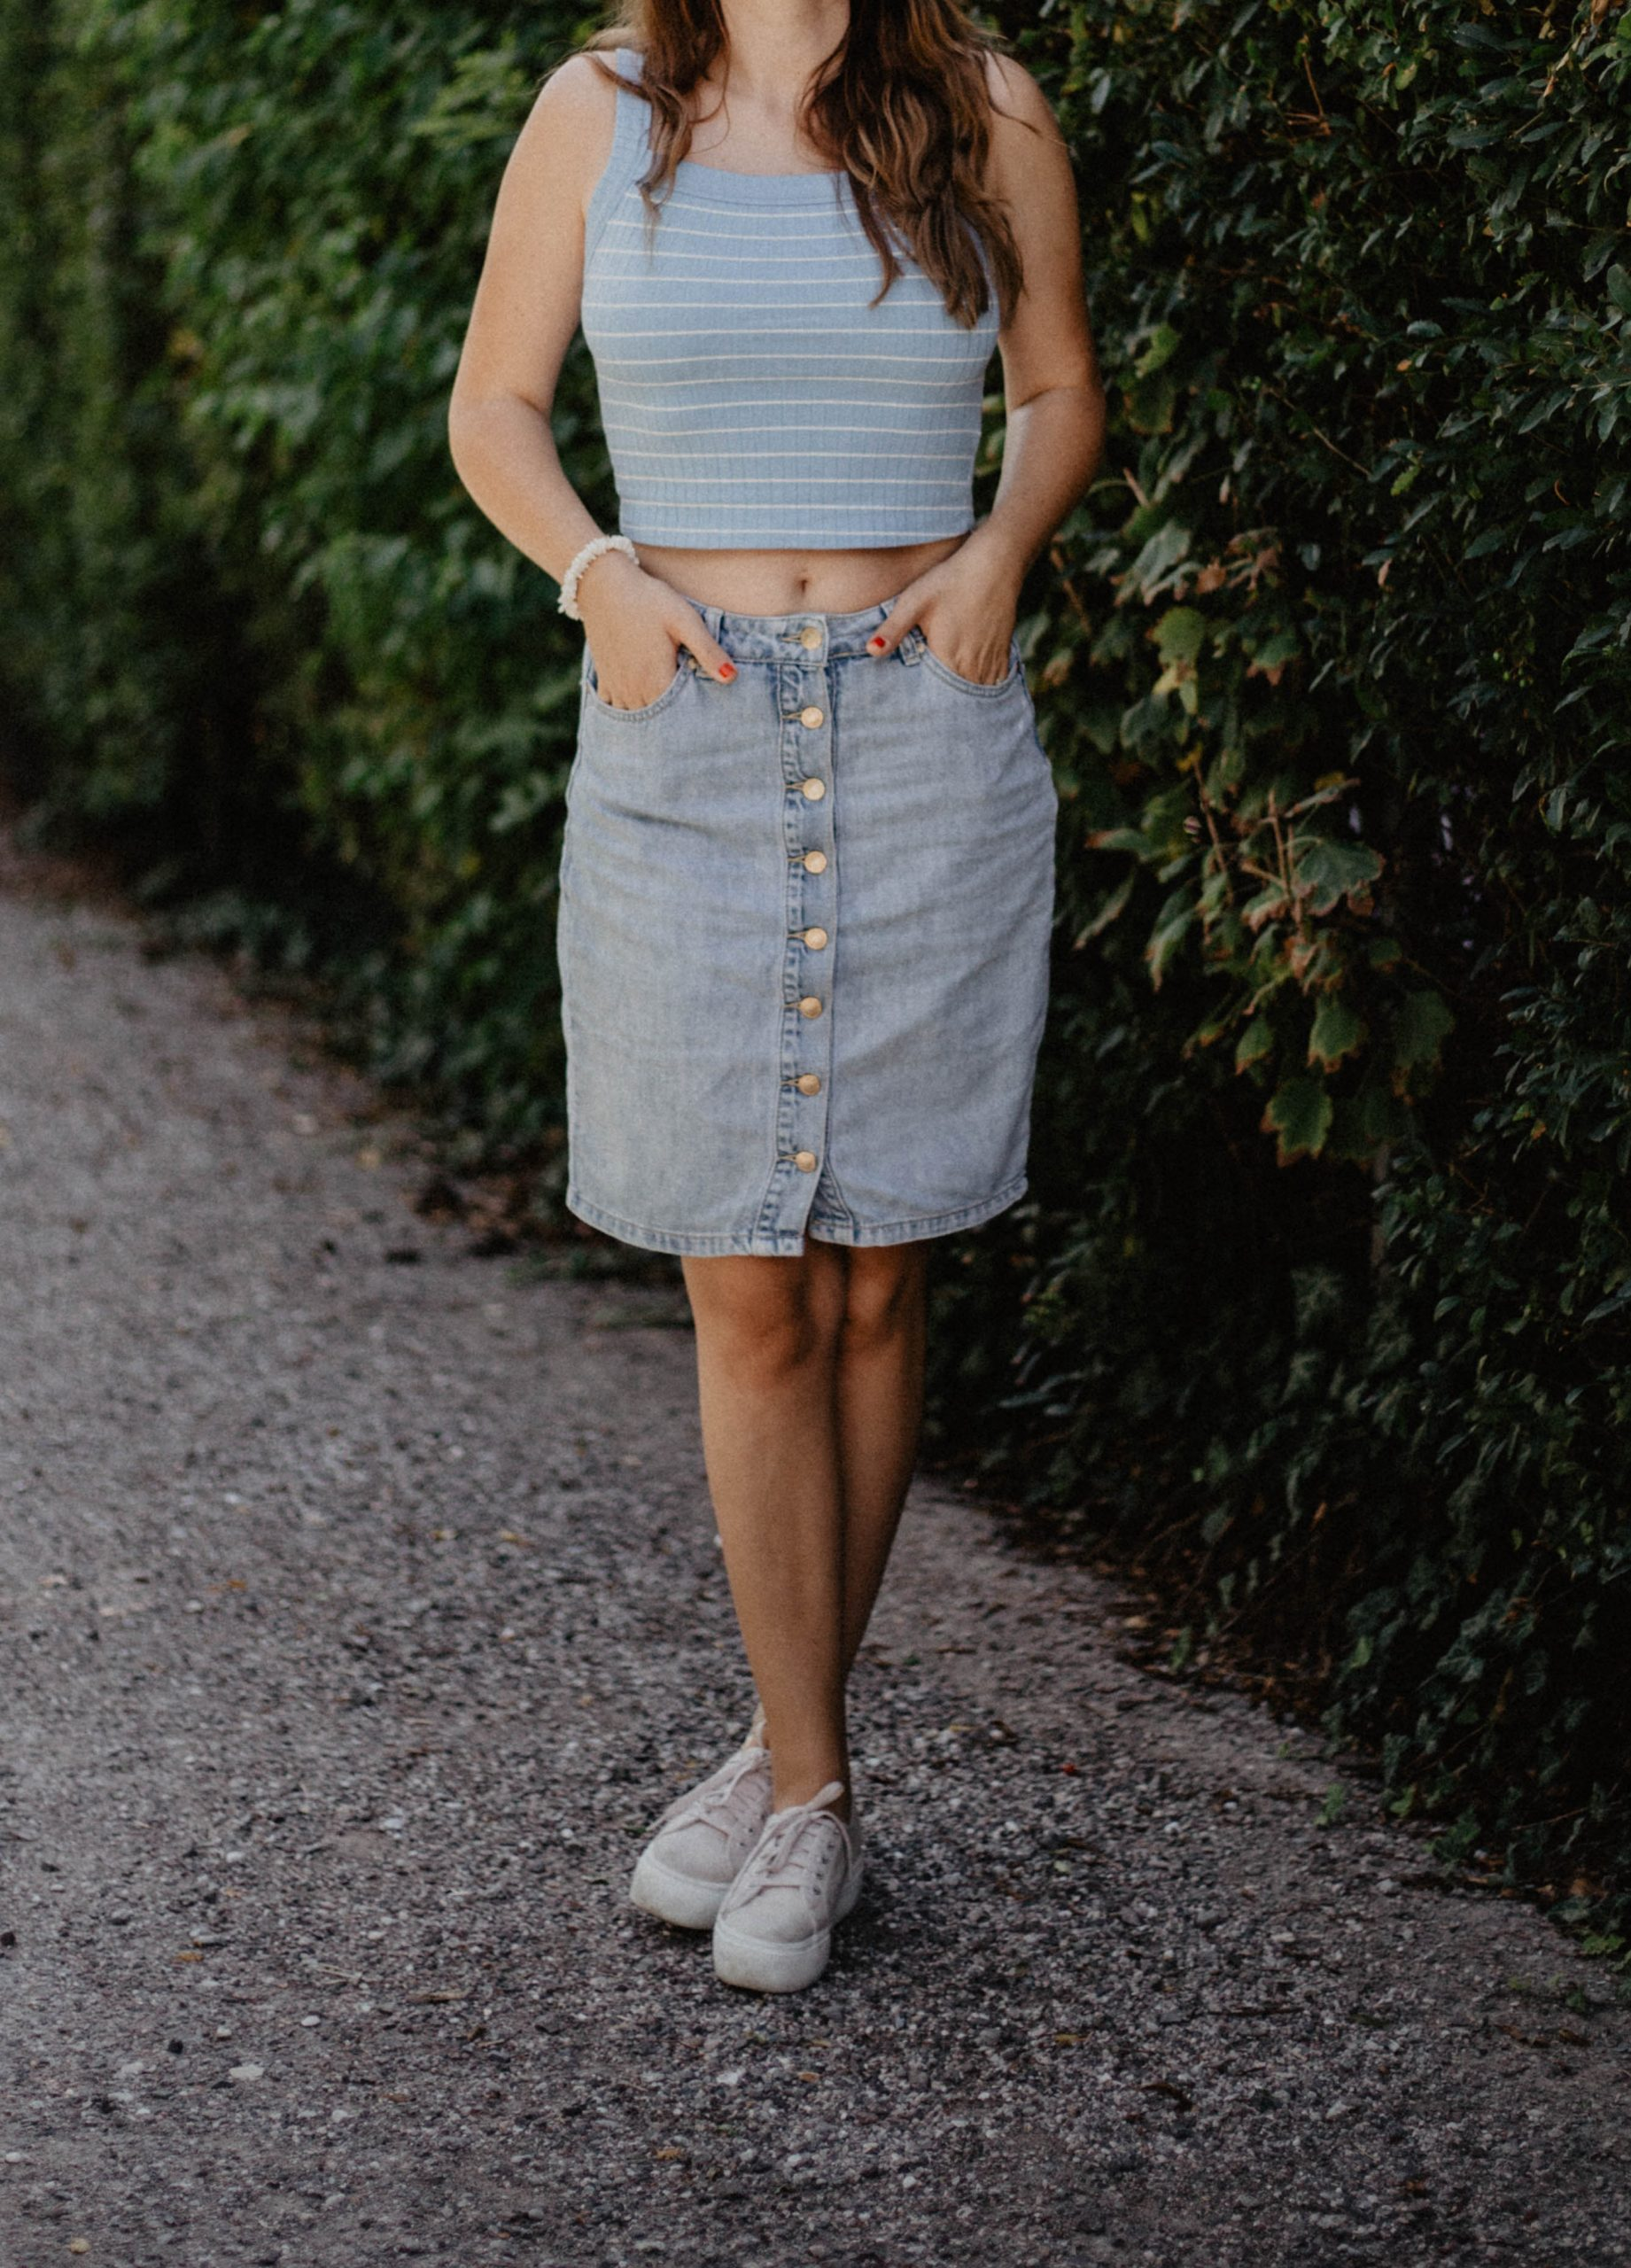 Jeansrock, blaues Top, Outfit